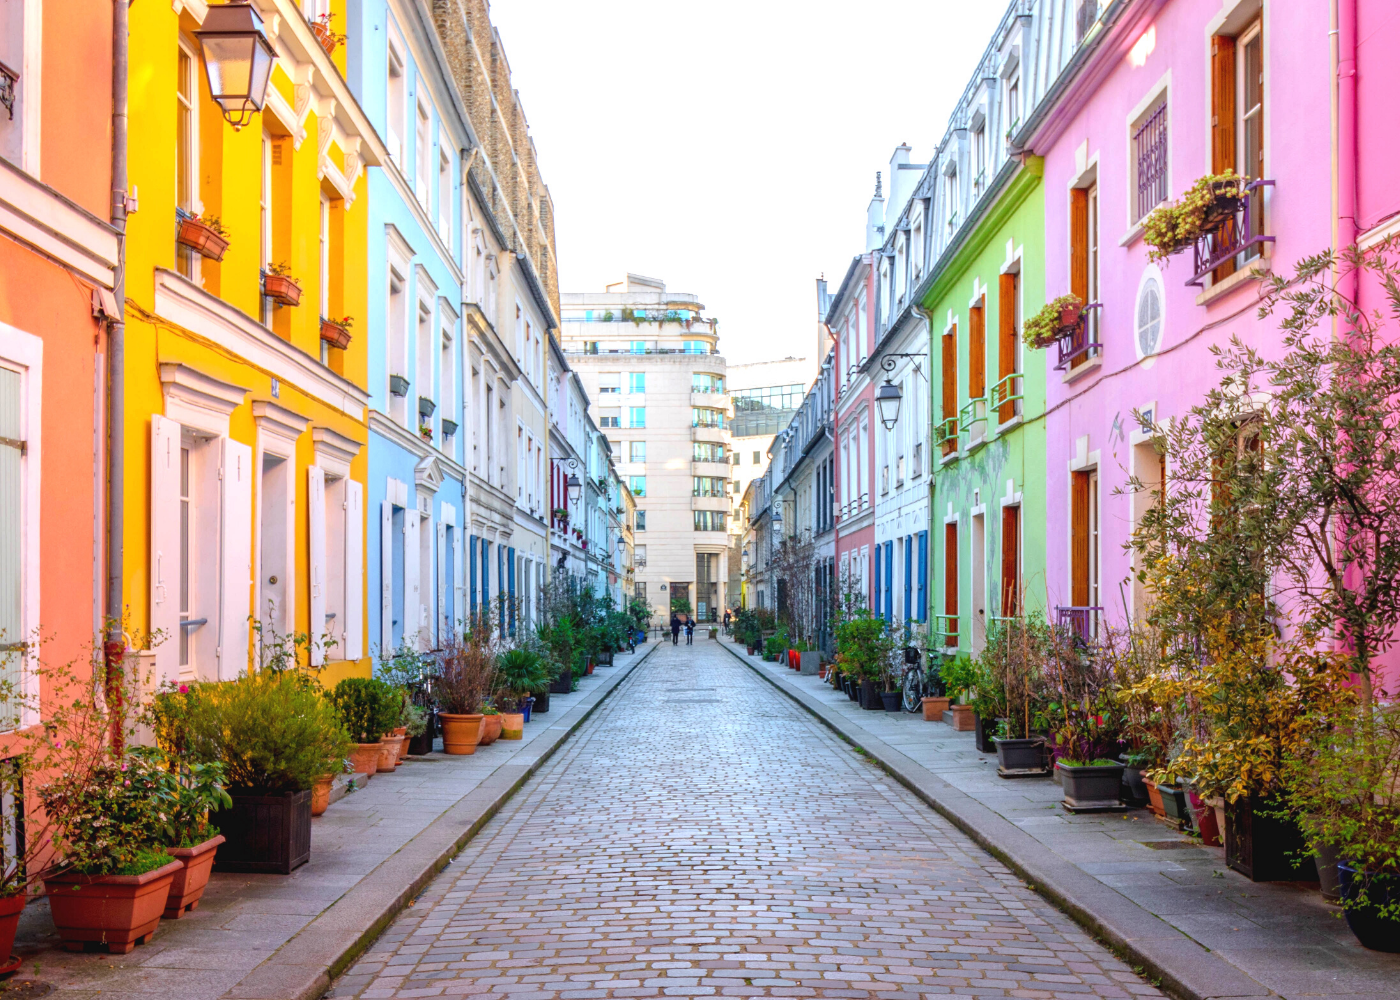 No travel? No problem! Explore these streets with virtual walking tours